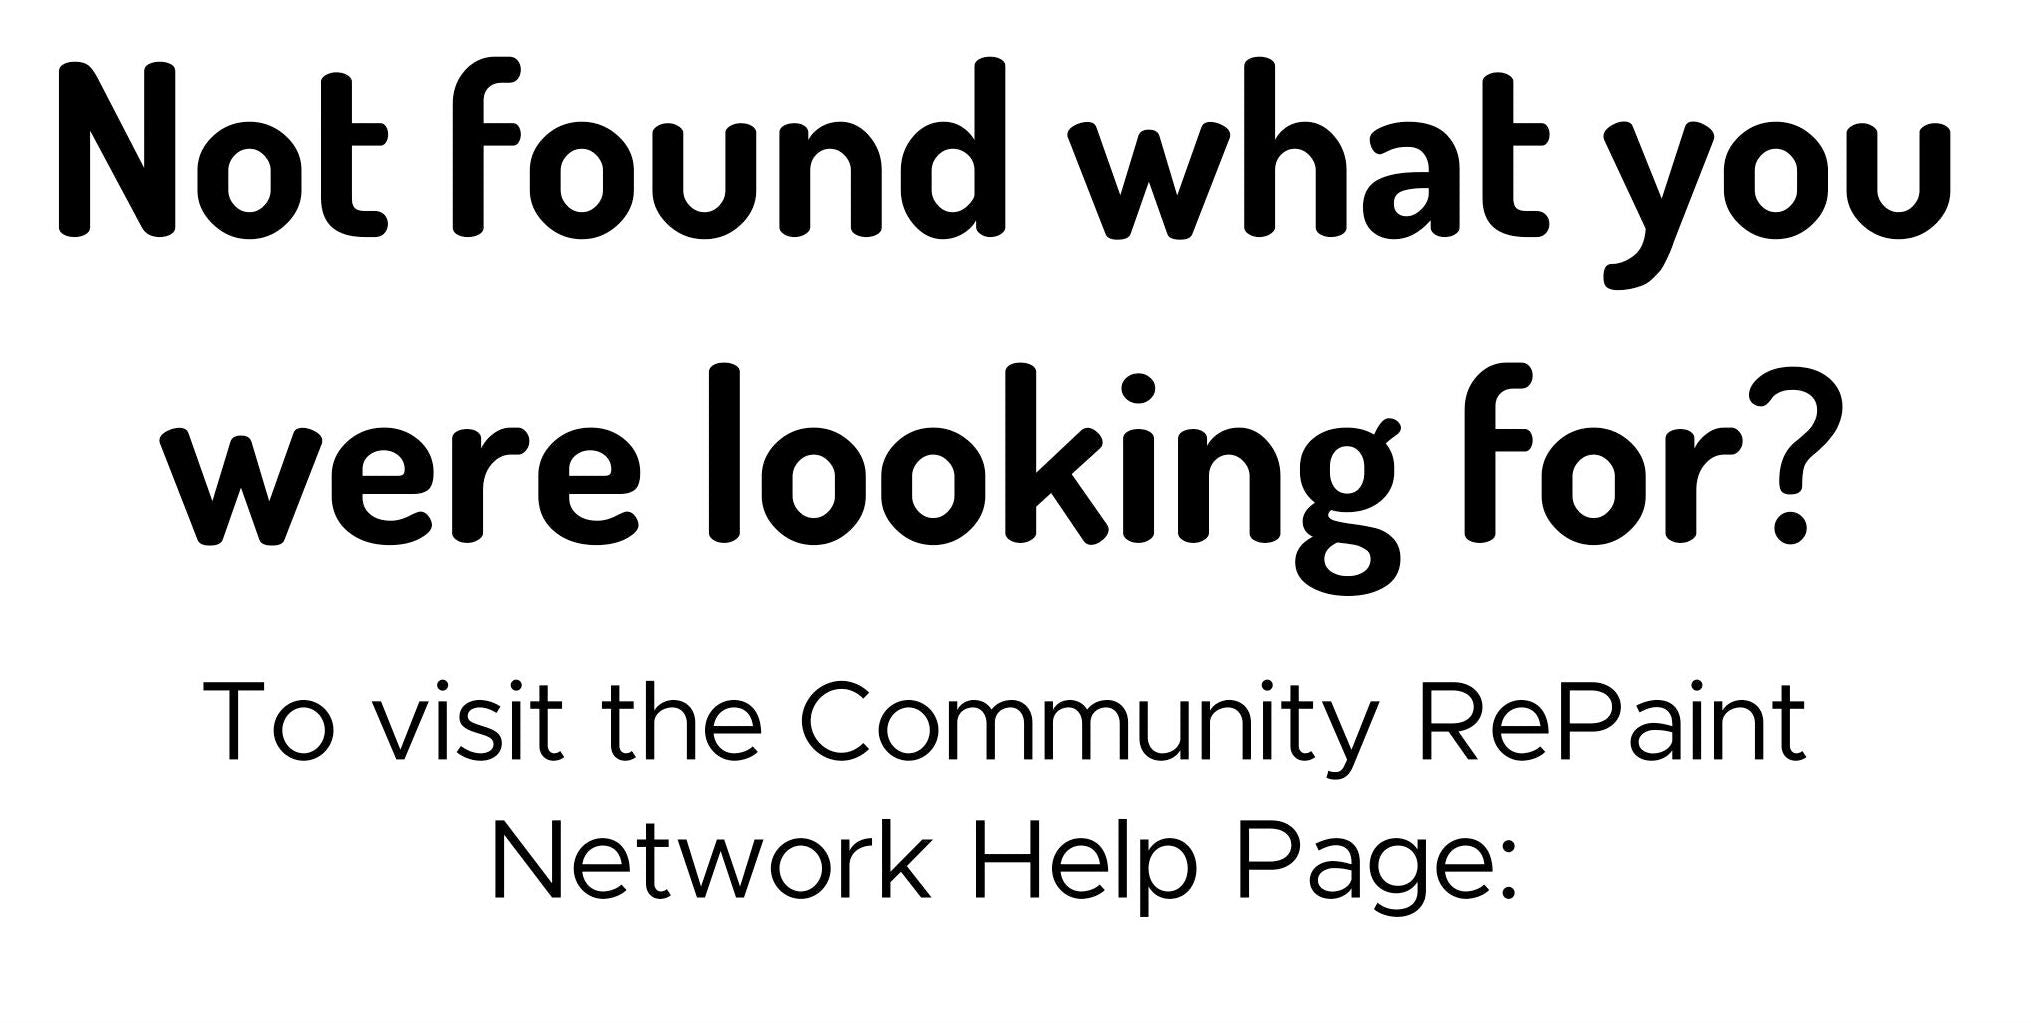 Not found what you need? Click the button below to visit Community RePaints Help Page